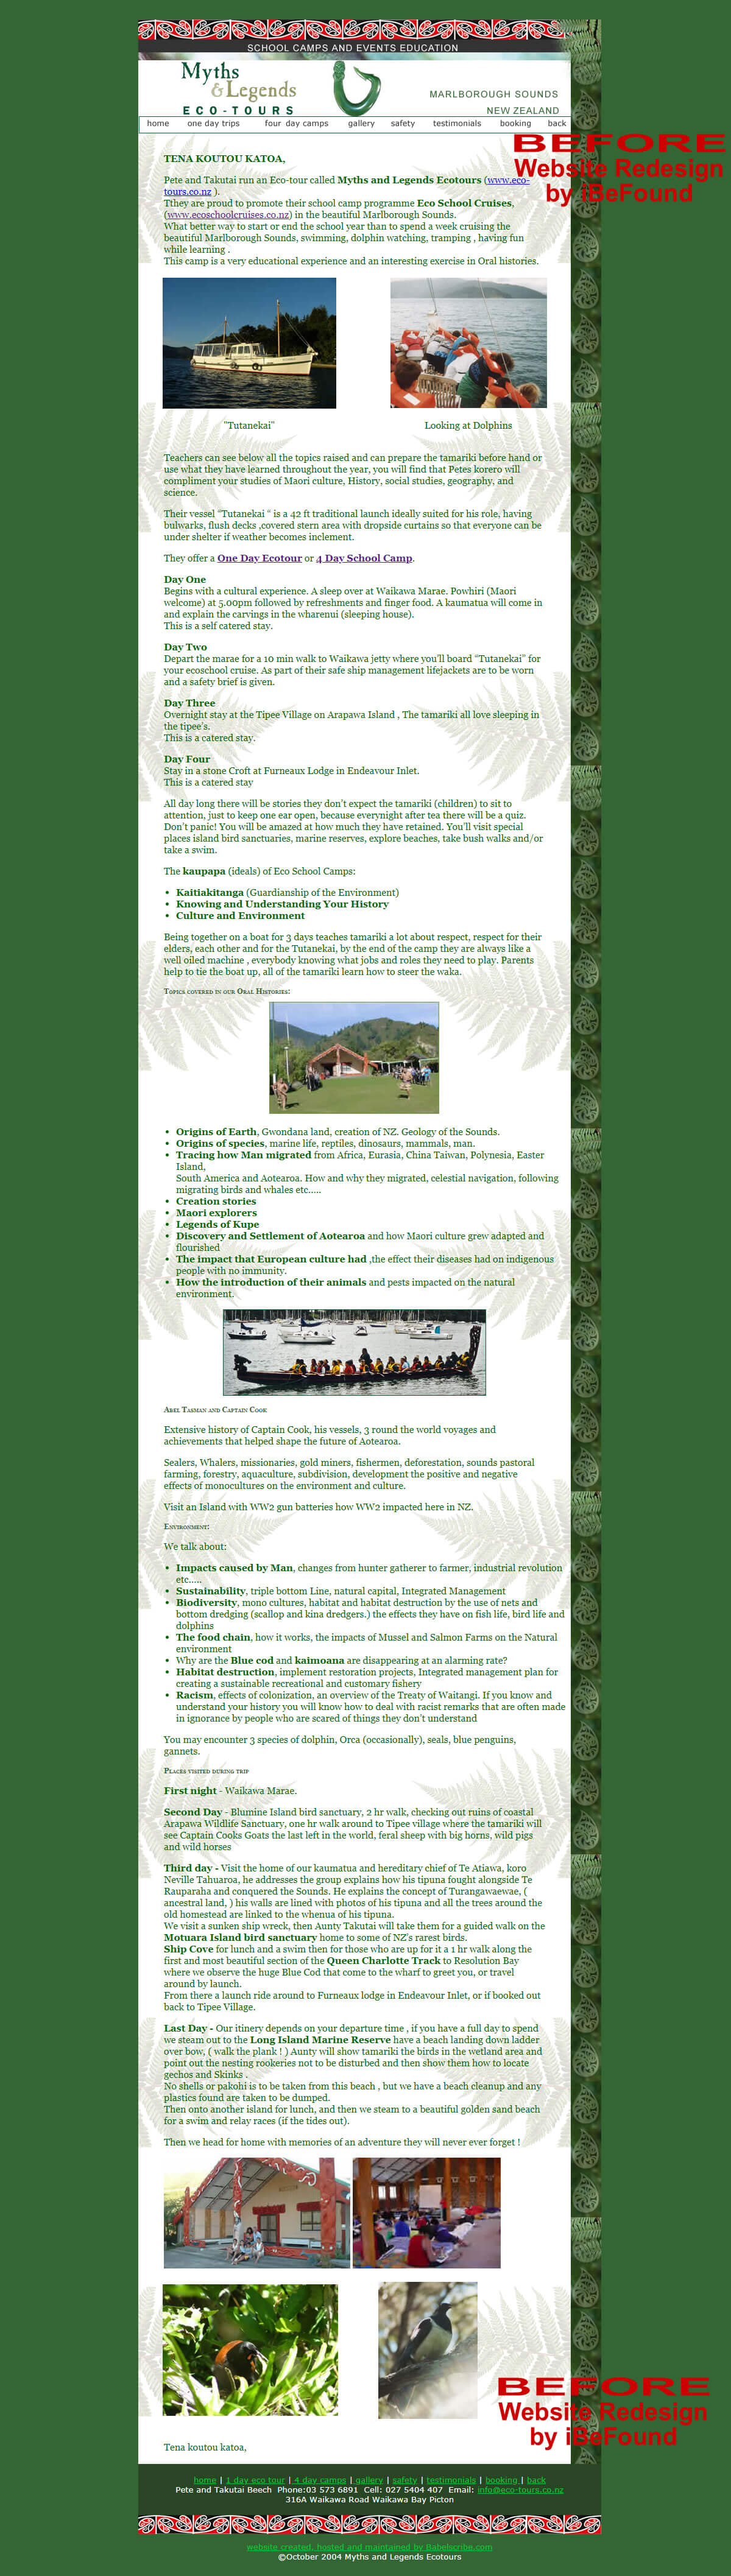 Homepage Of Maori Eco School Cruises Before Website Redesign By IBeFound Digital Marketing Division